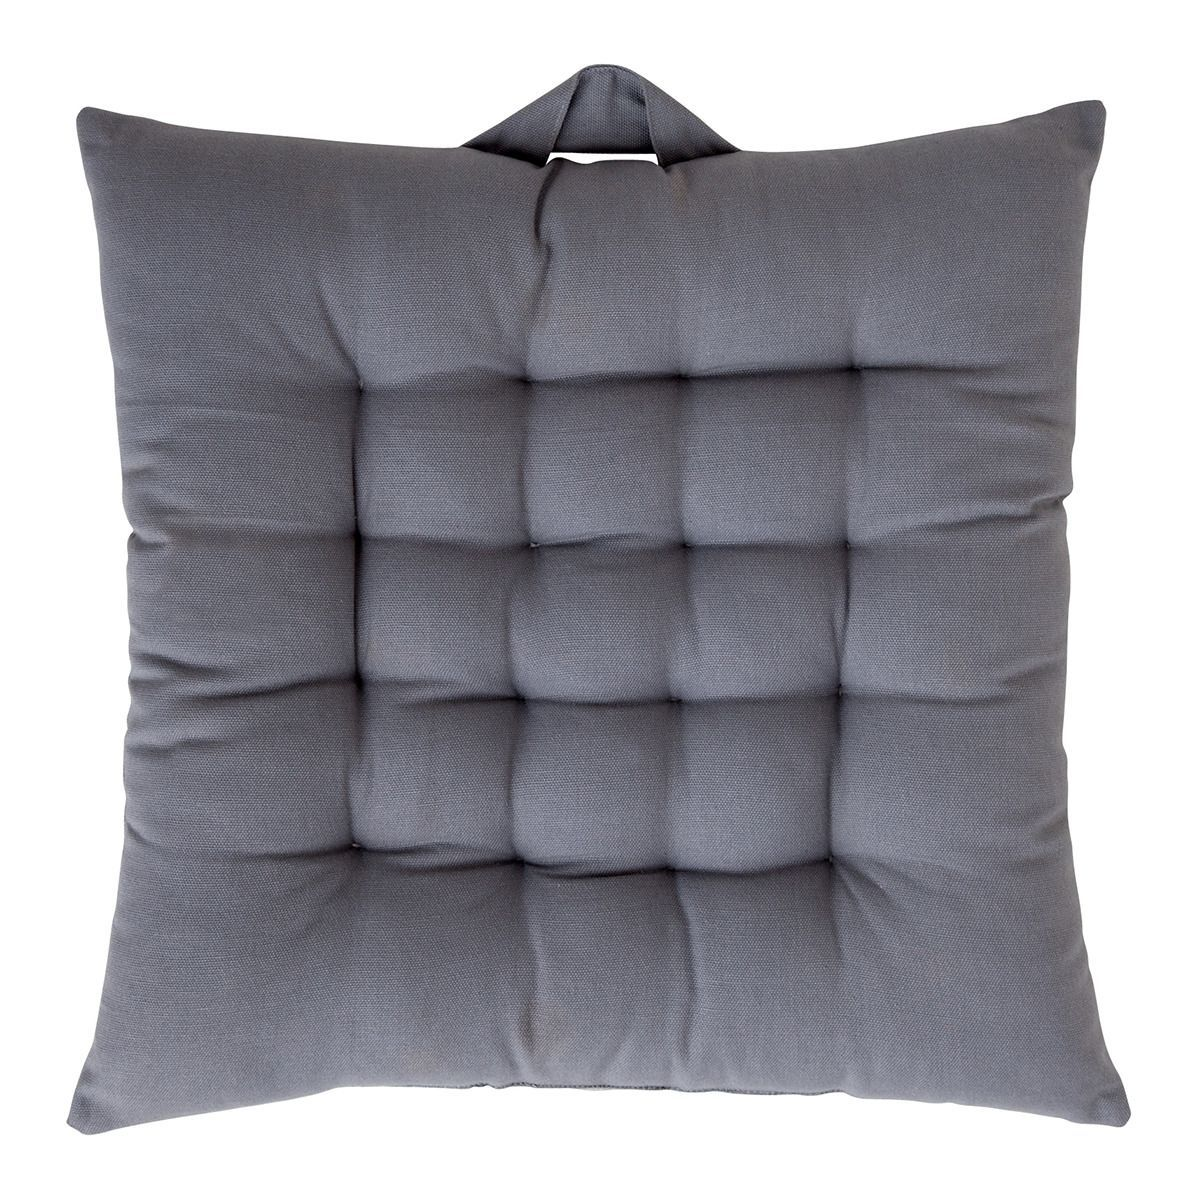 Coussin Pour Chaise Nallado Taille 40x40 Cm Coussin Chaise Chaise Coussin